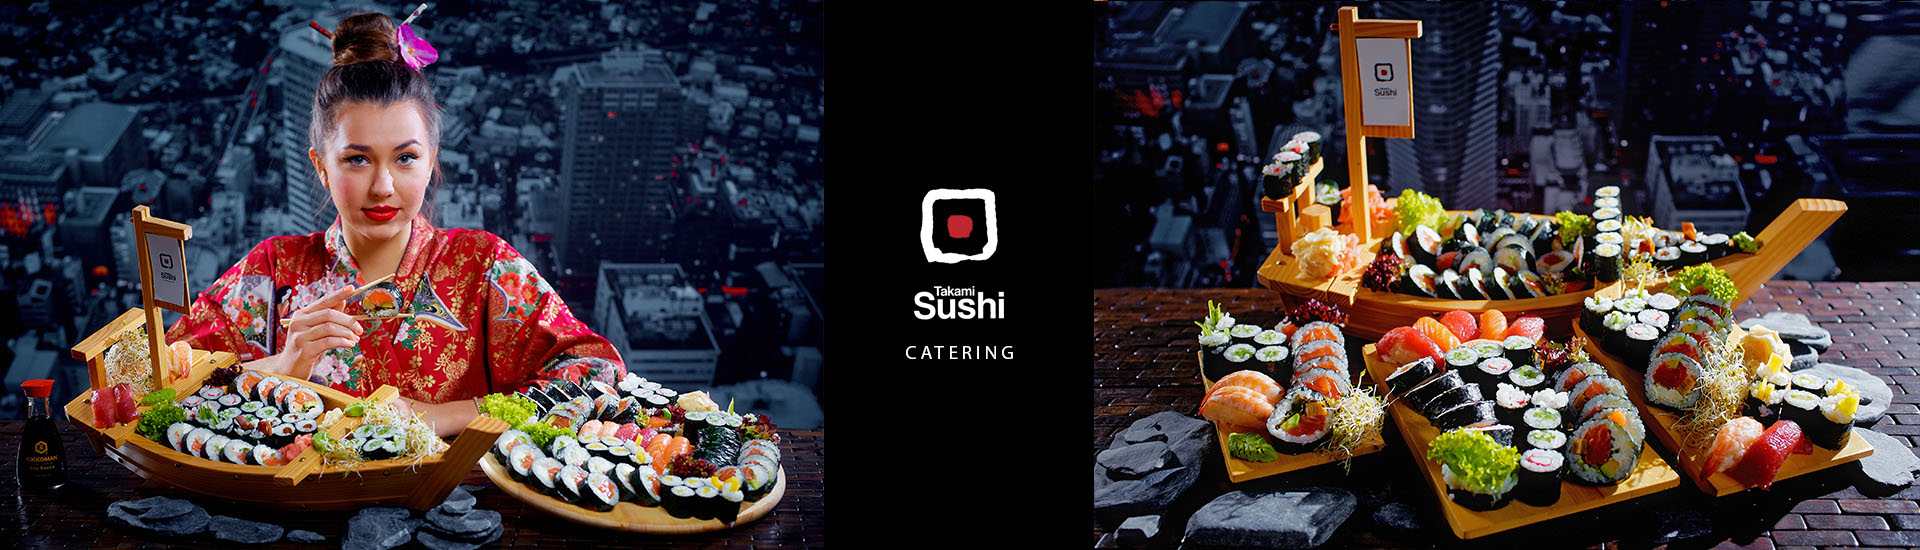 sushi_catering_lublin